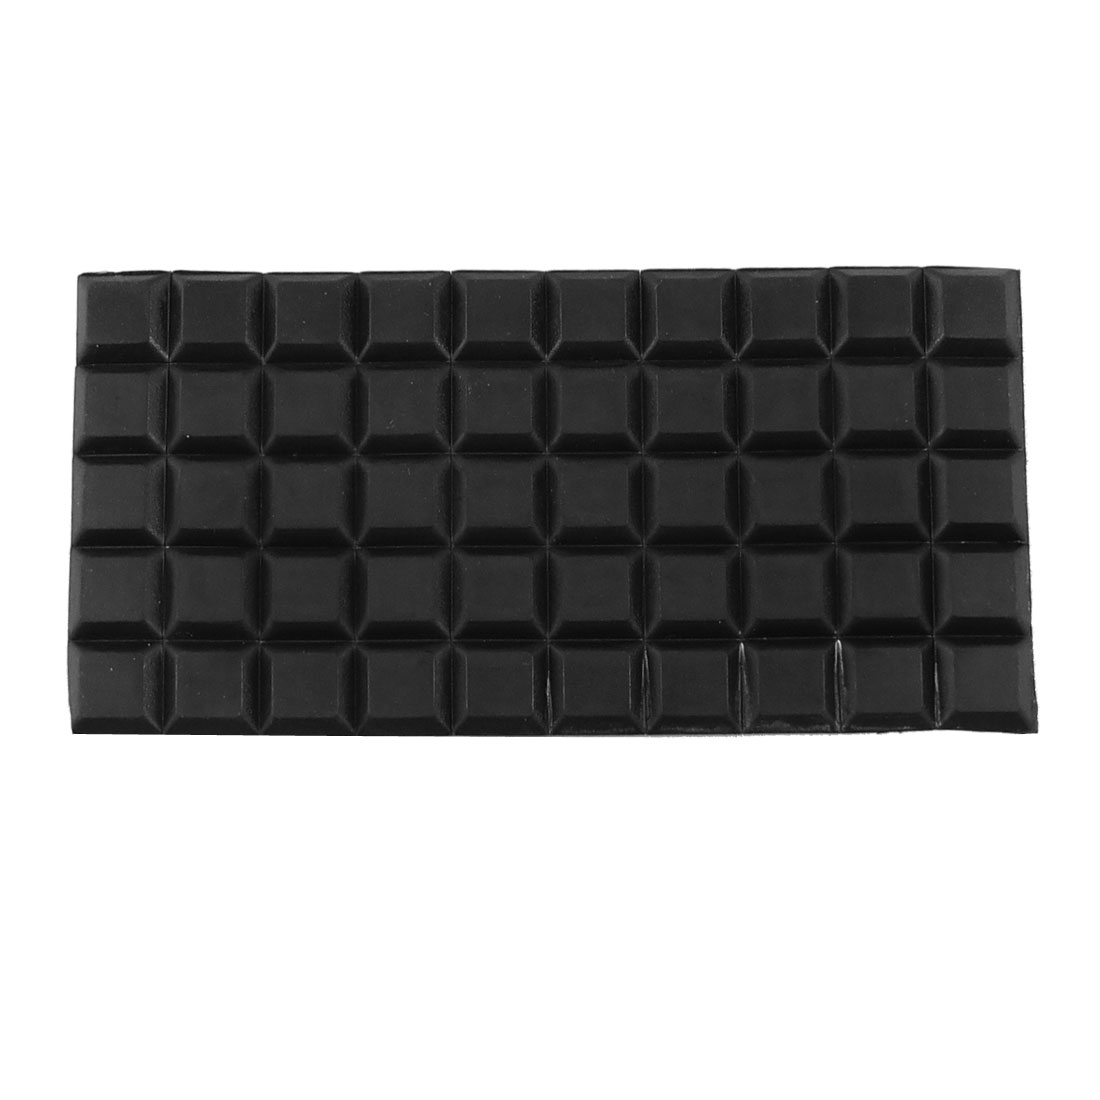 Chair Floor Adhesive 13mm x 13mm x 3mm Mini Rubber Pads Black